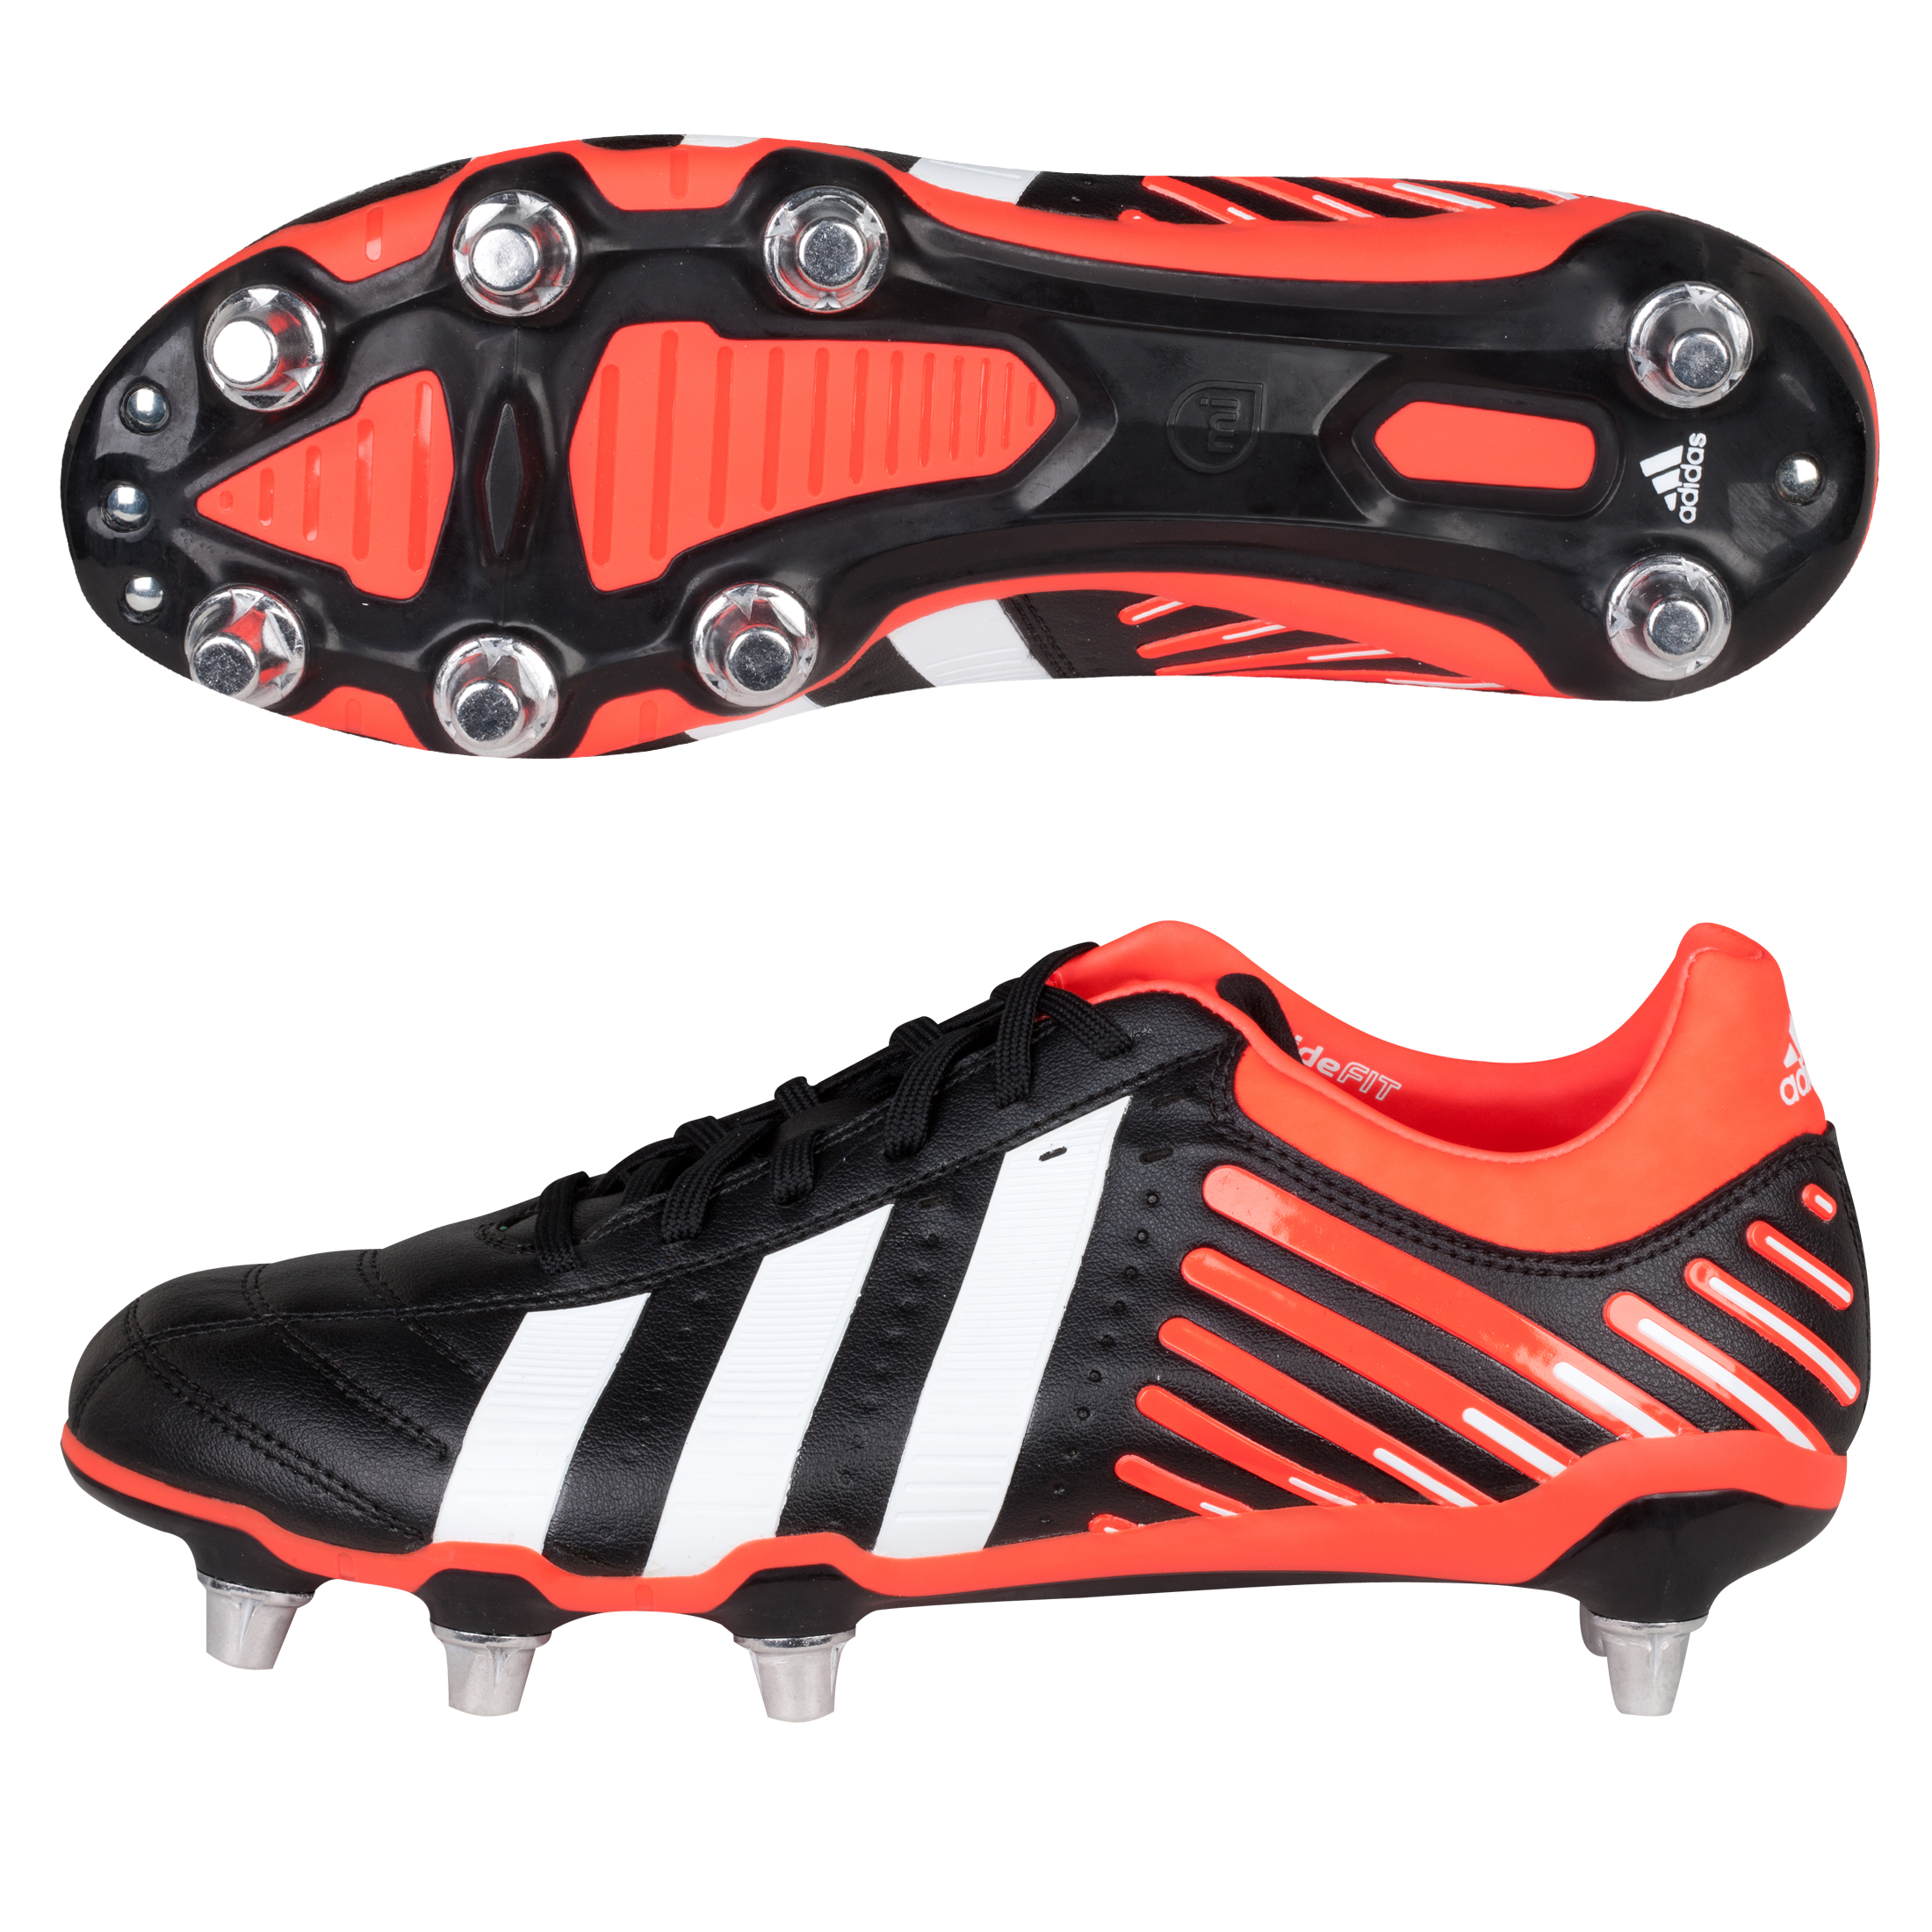 Adidas Adipower Kakari Soft Ground Rugby Boots - Black/Running White/Infrared